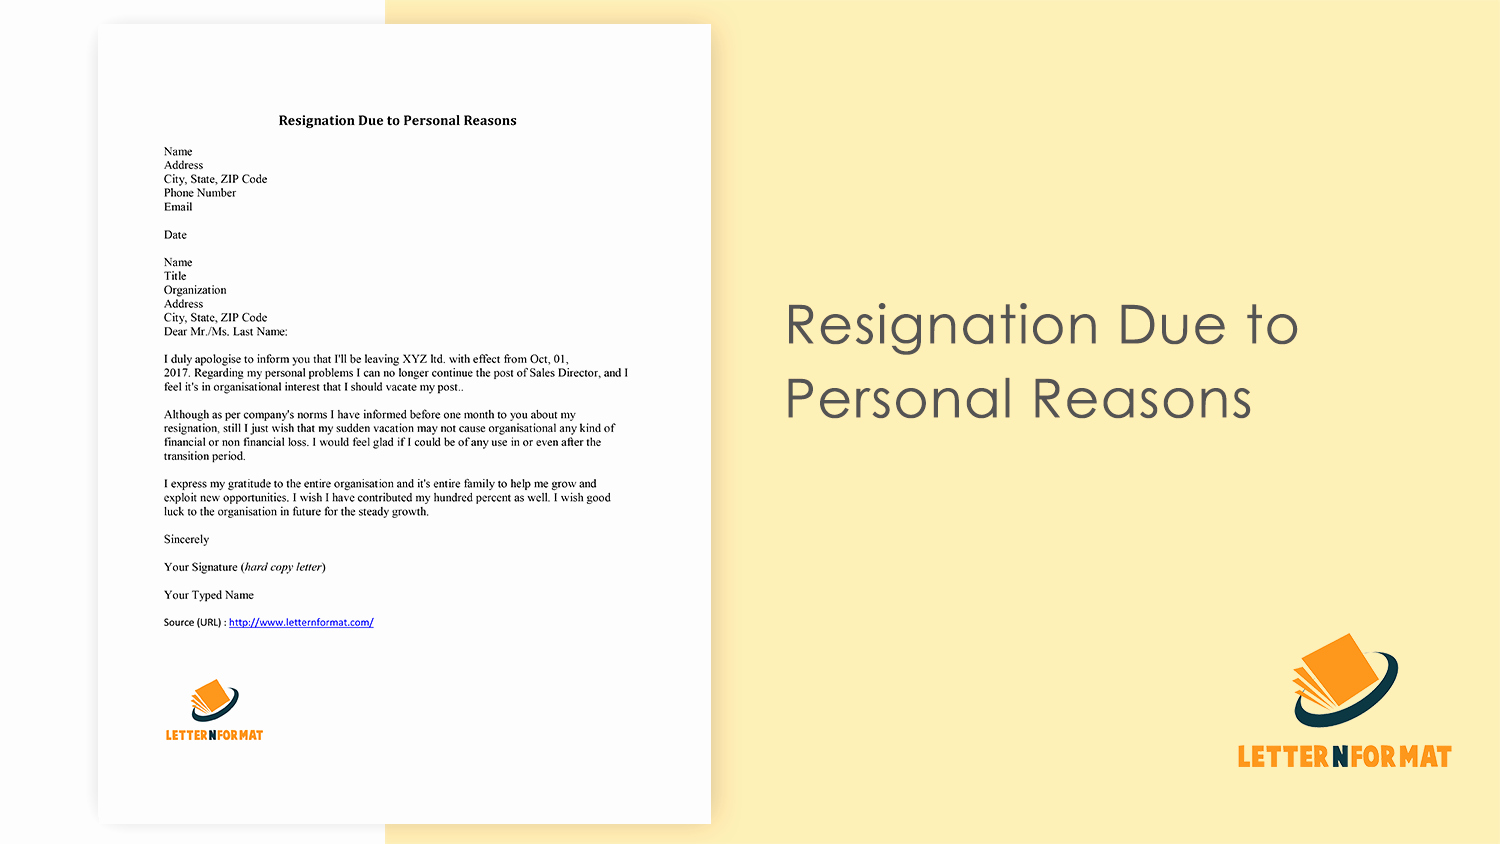 Resignation Letter for Family Reason New Resignation Letter format for Personal Reasons Download Pdf